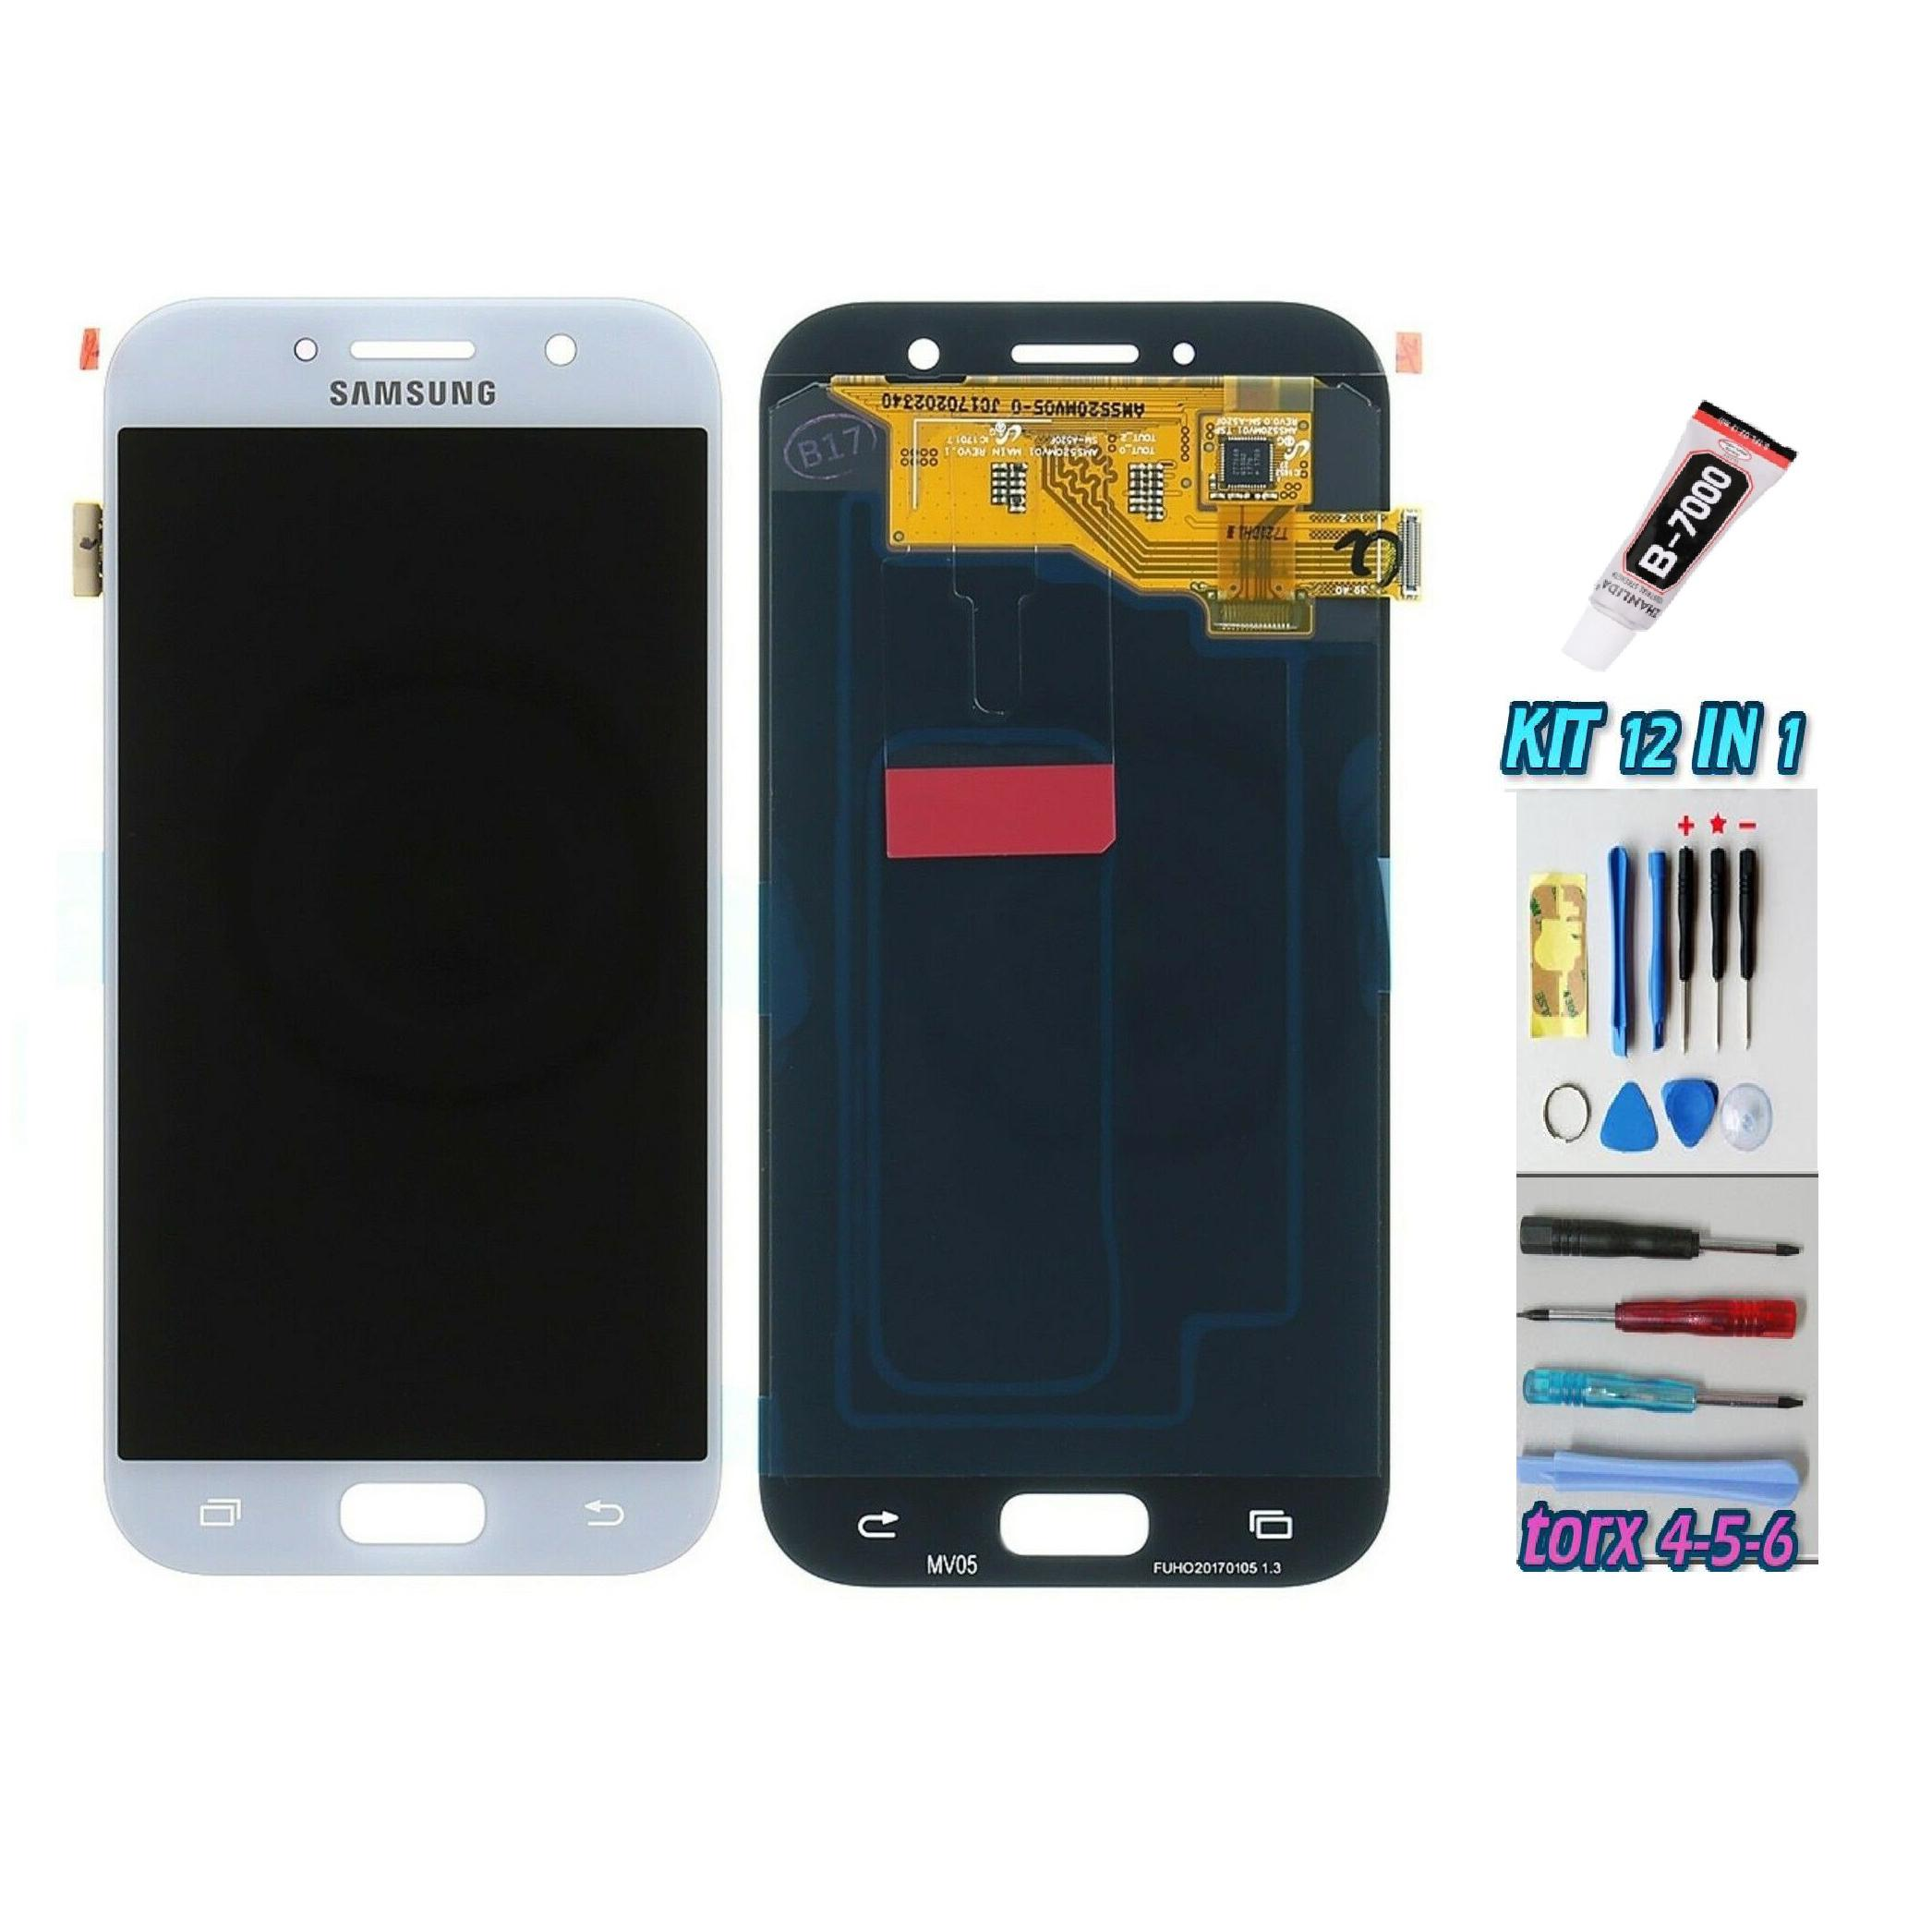 TOUCH SCREEN LCD DISPLAY BLU per Samsung GALAXY A5 2017 A520F SM-A520F + Kit 9 in 1 colla b7000 e biadesivo